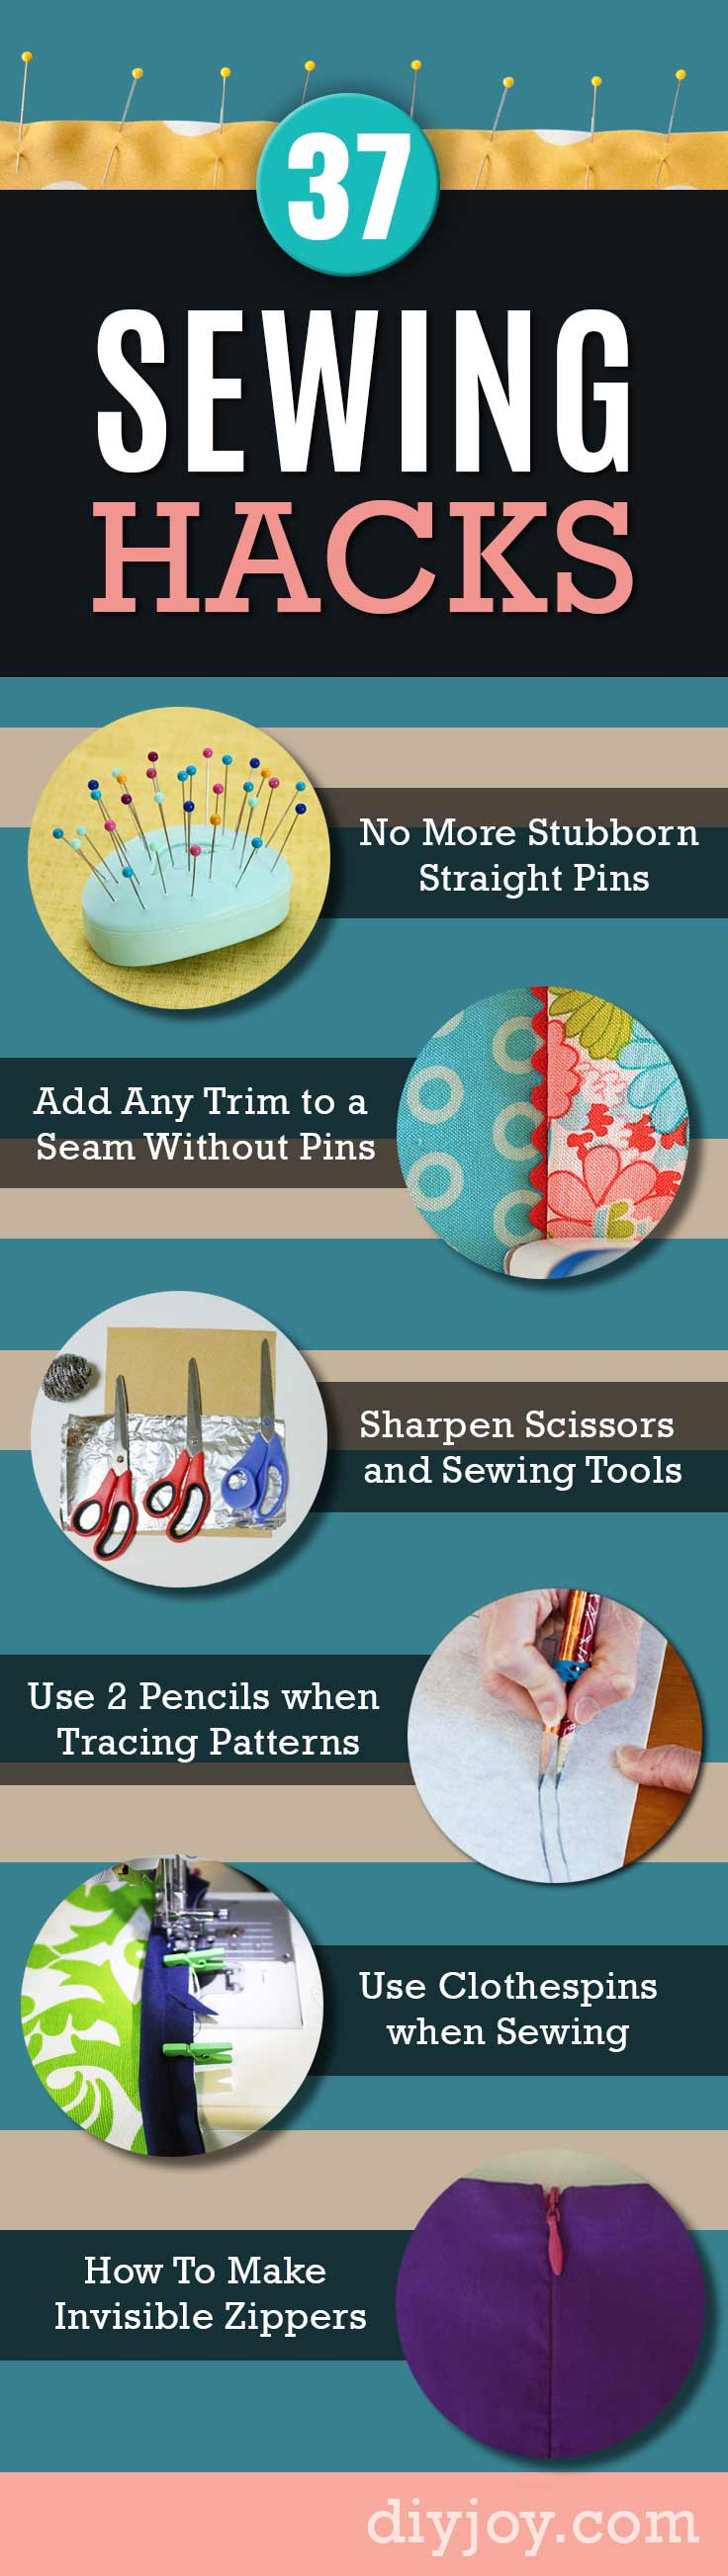 Sewing Hacks | Best Tips and Tricks for Sewing Patterns, Projects, Machines, Hand Sewn Items. Clever Ideas for Beginners and Even Experts